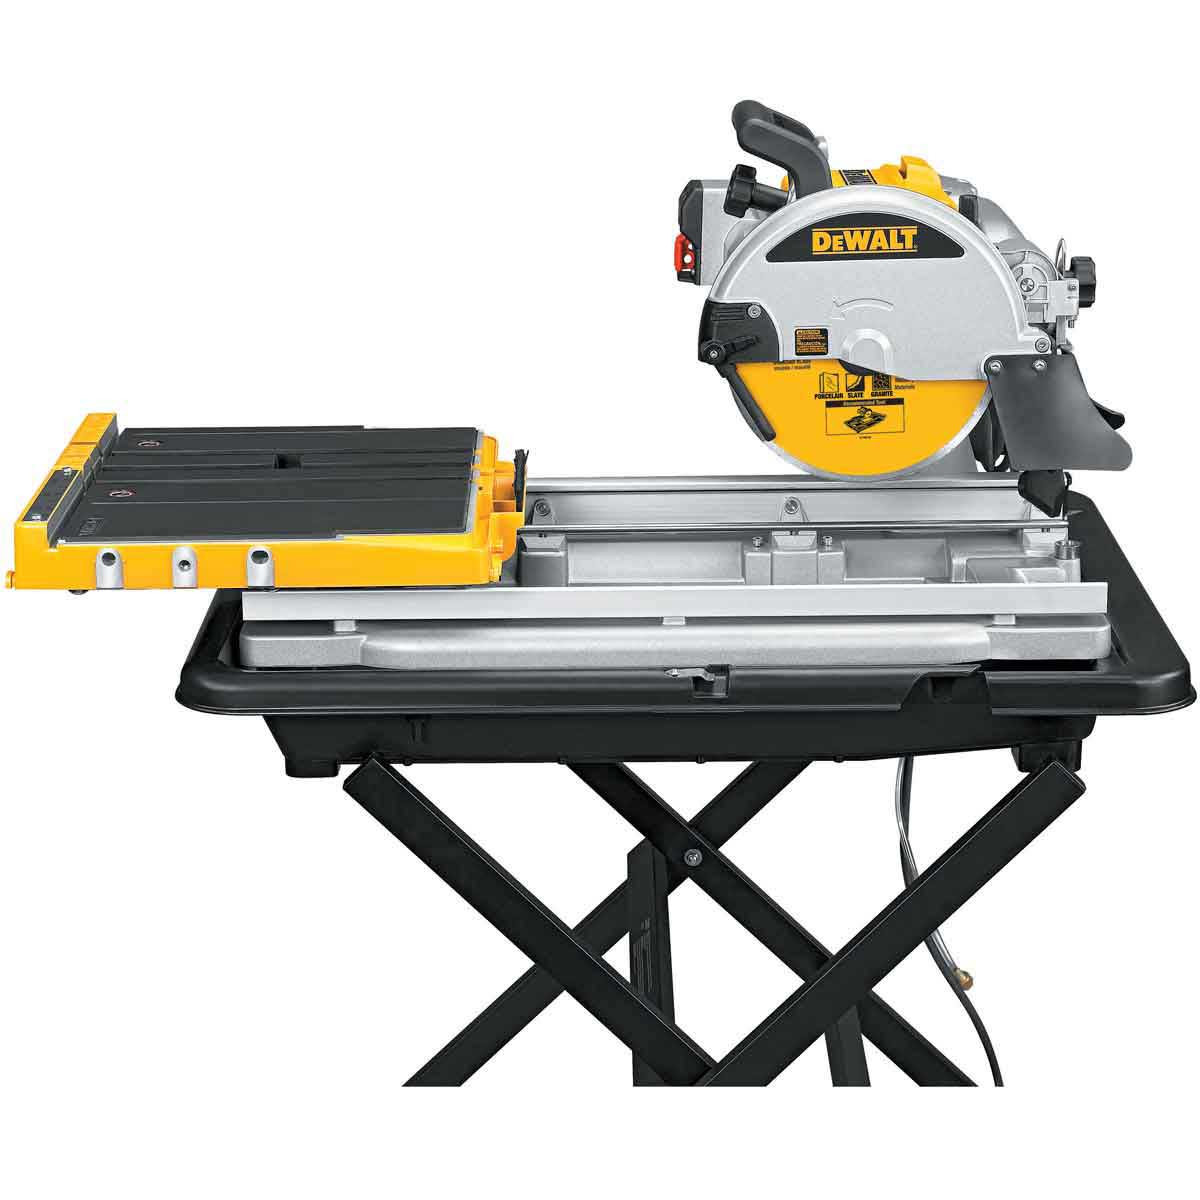 dewalt tile saw with stand